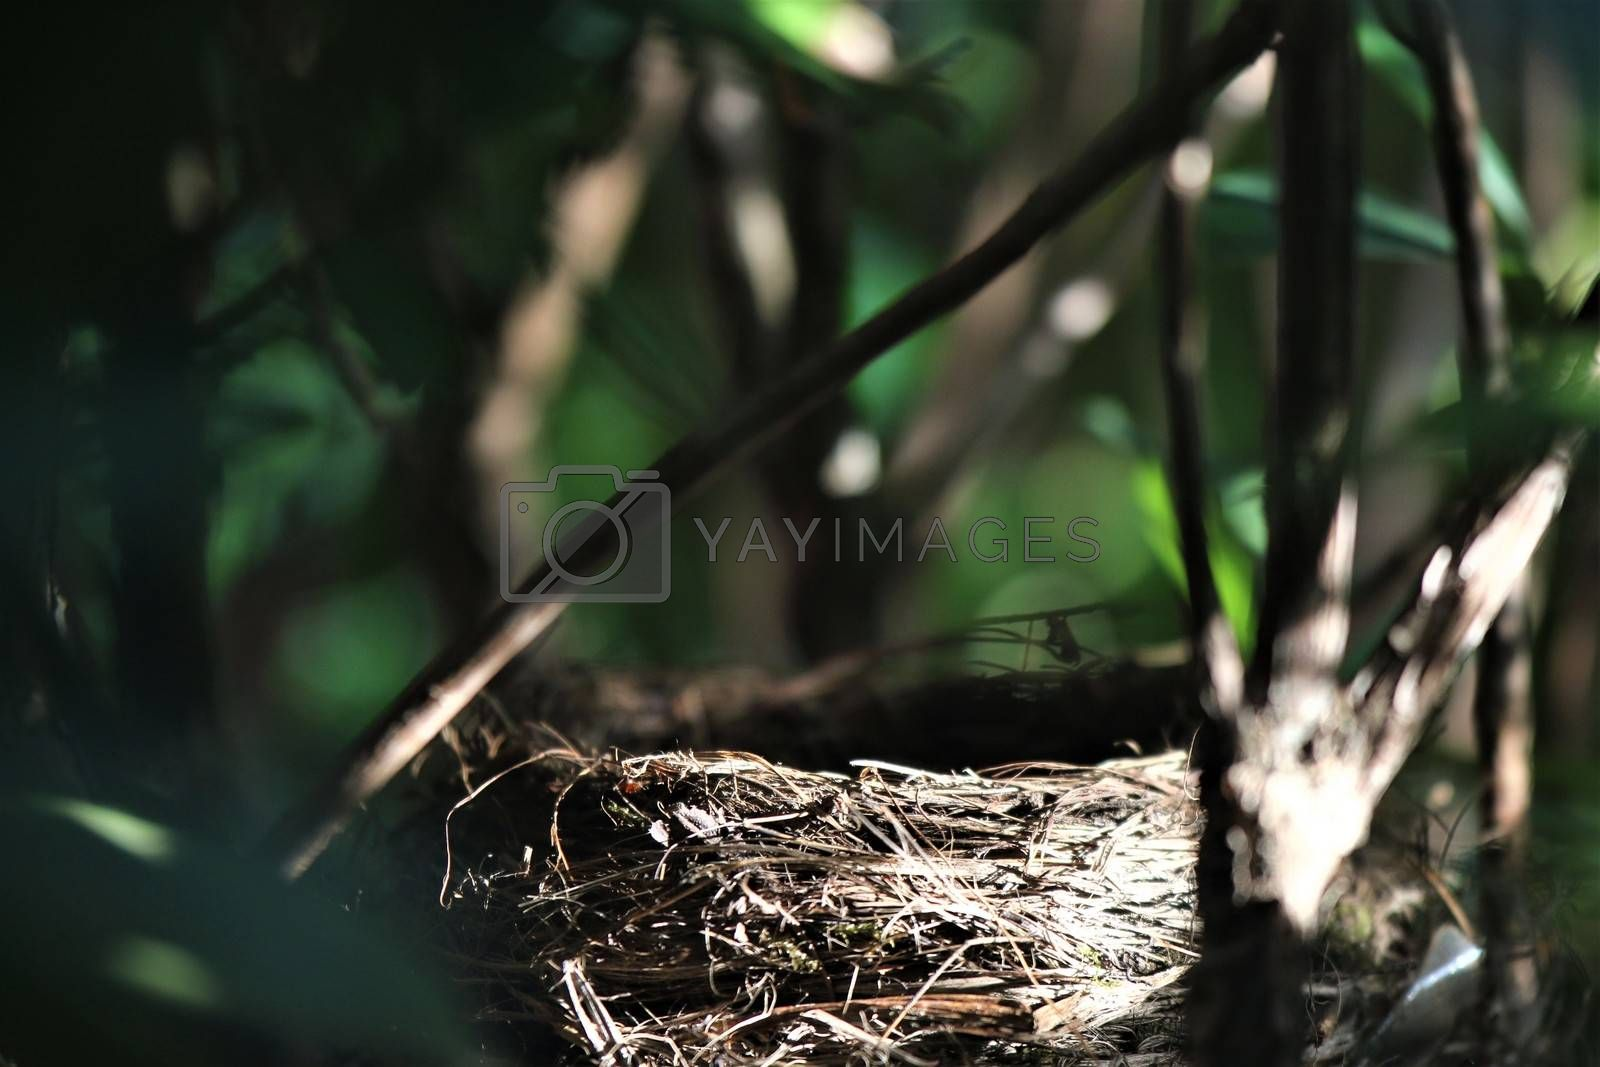 An empty birds nest in a rhododendron bush